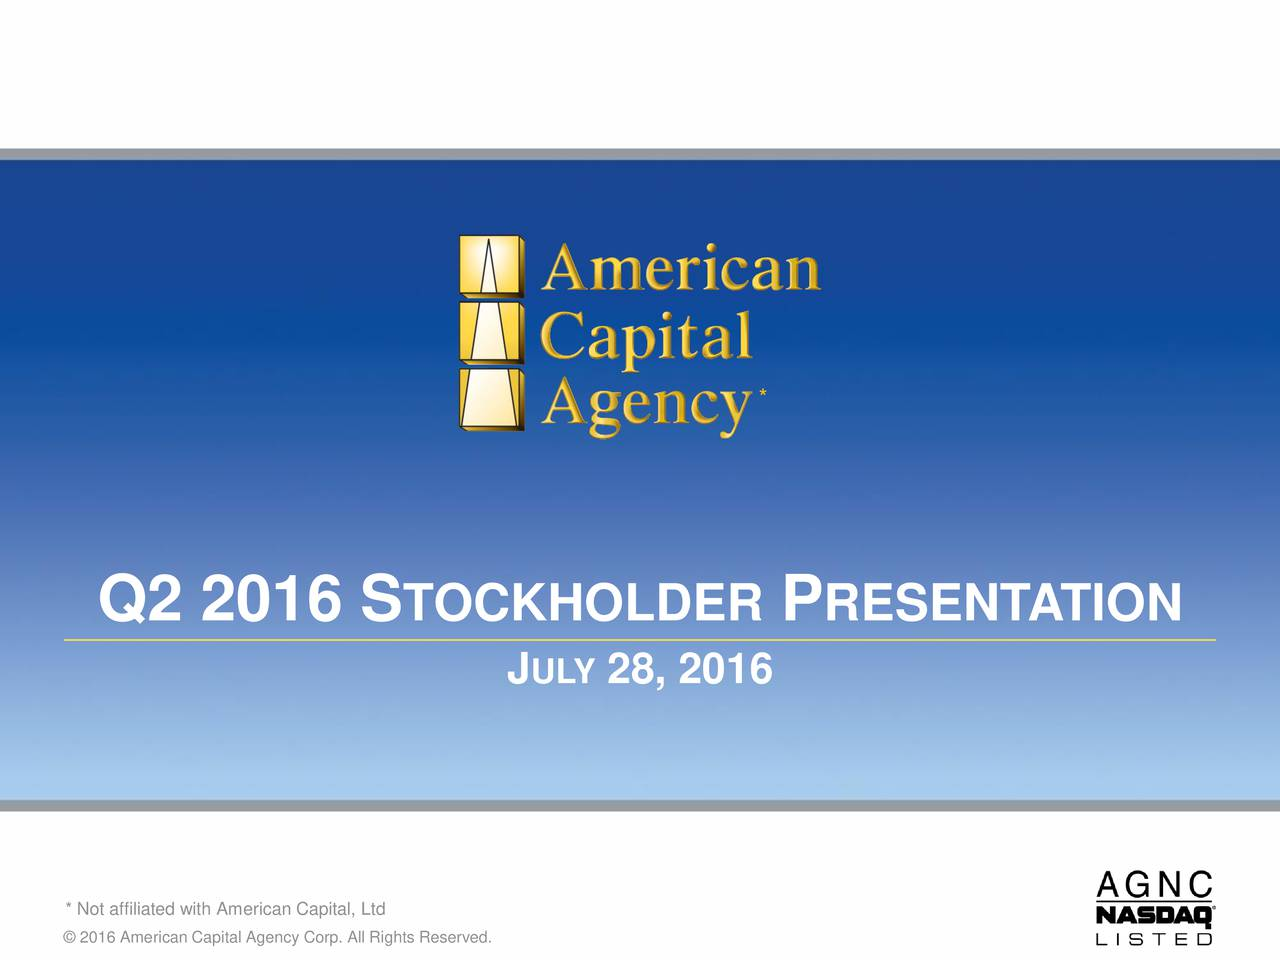 Q2 2016 S TOCKHOLDER P RESENTATION JULY28, 2016 * Not affiliated with American Capital, Ltd